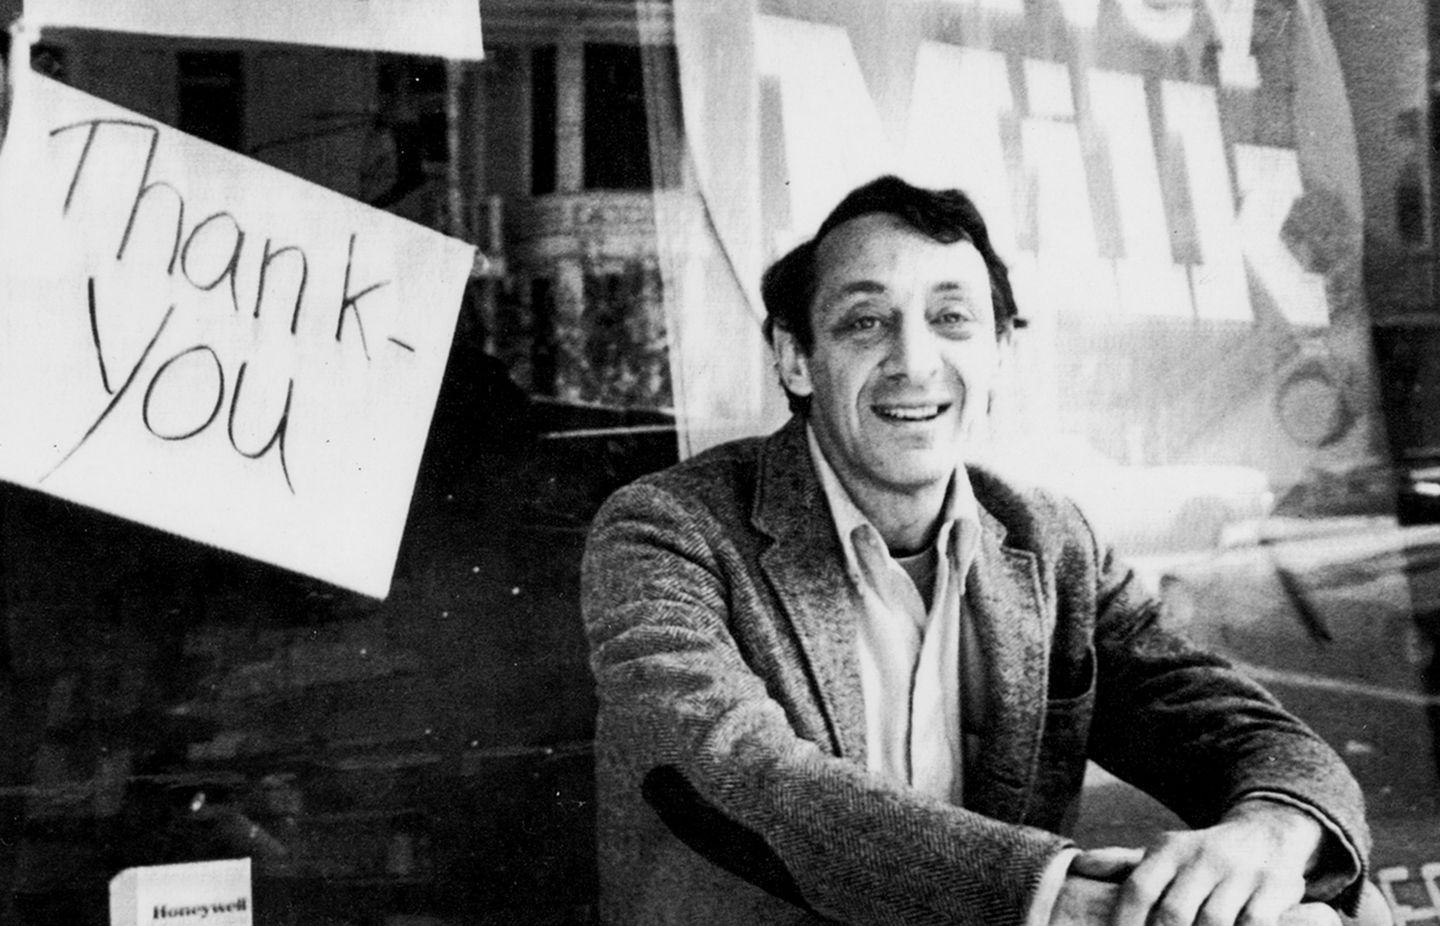 https://www.bostonglobe.com/opinion/2018/06/02/harvey-milk-and-enduring-power-brash-visibility/tXg24L1BxWtCtxQ9HnzrIN/story.html